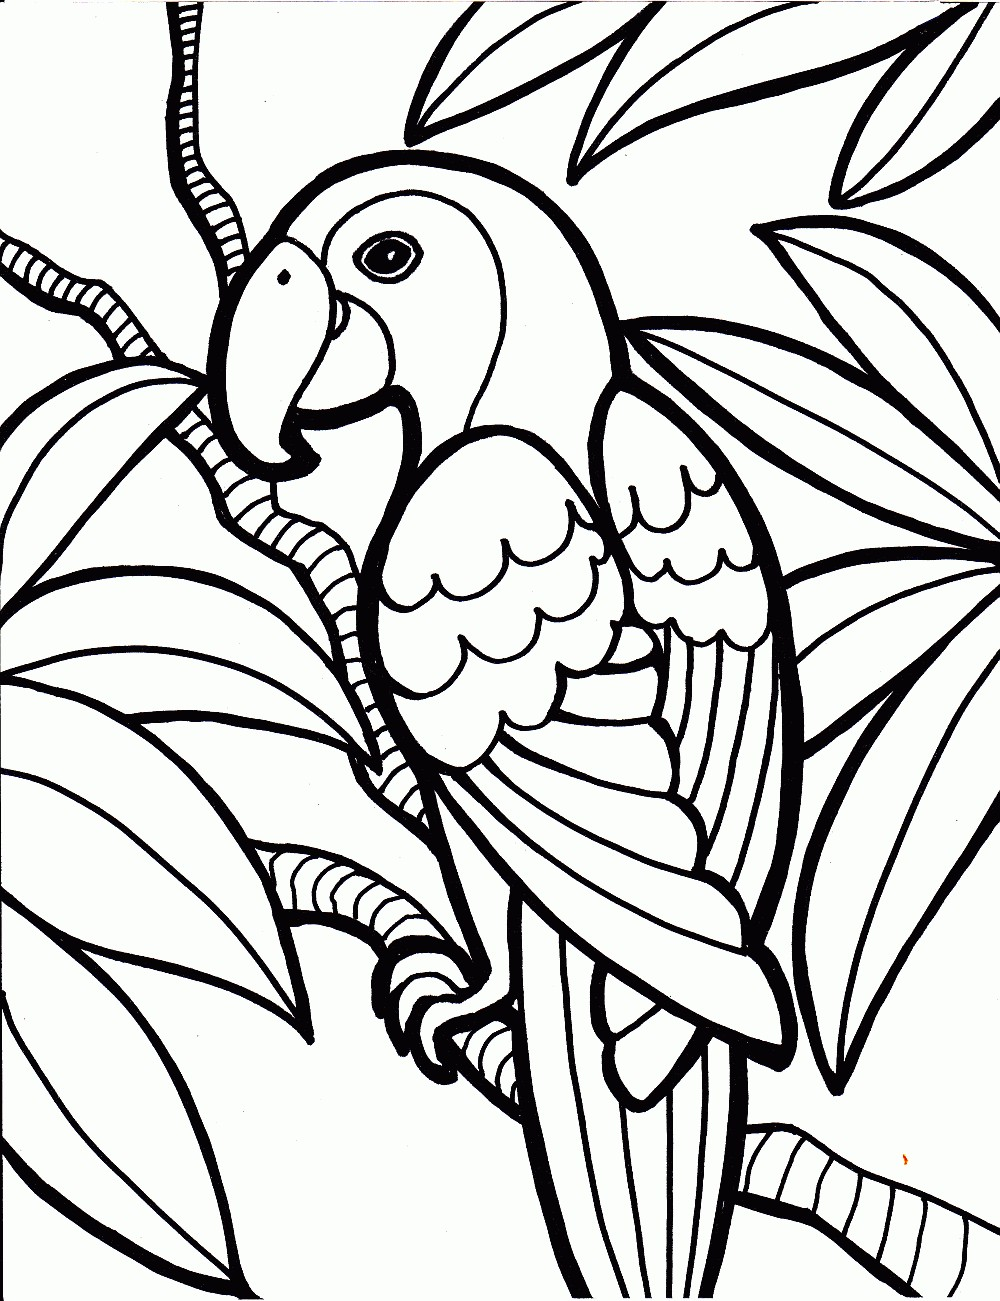 coloring pitchers : Parrot Birds Coloring Page